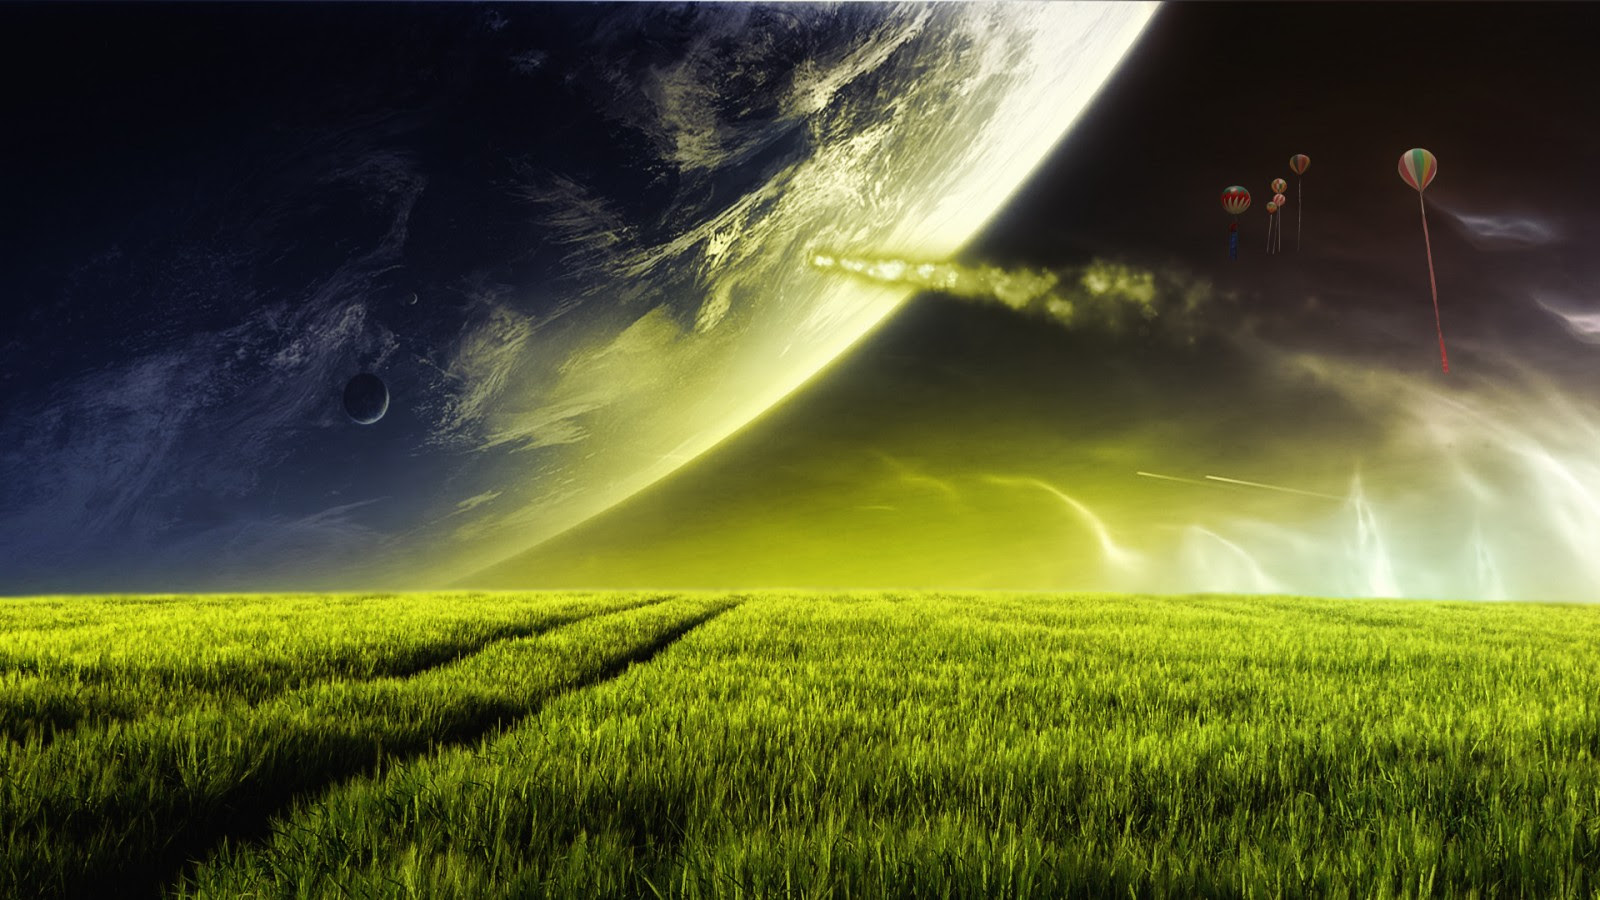 Hd Alien Planet Wallpapers Downloads